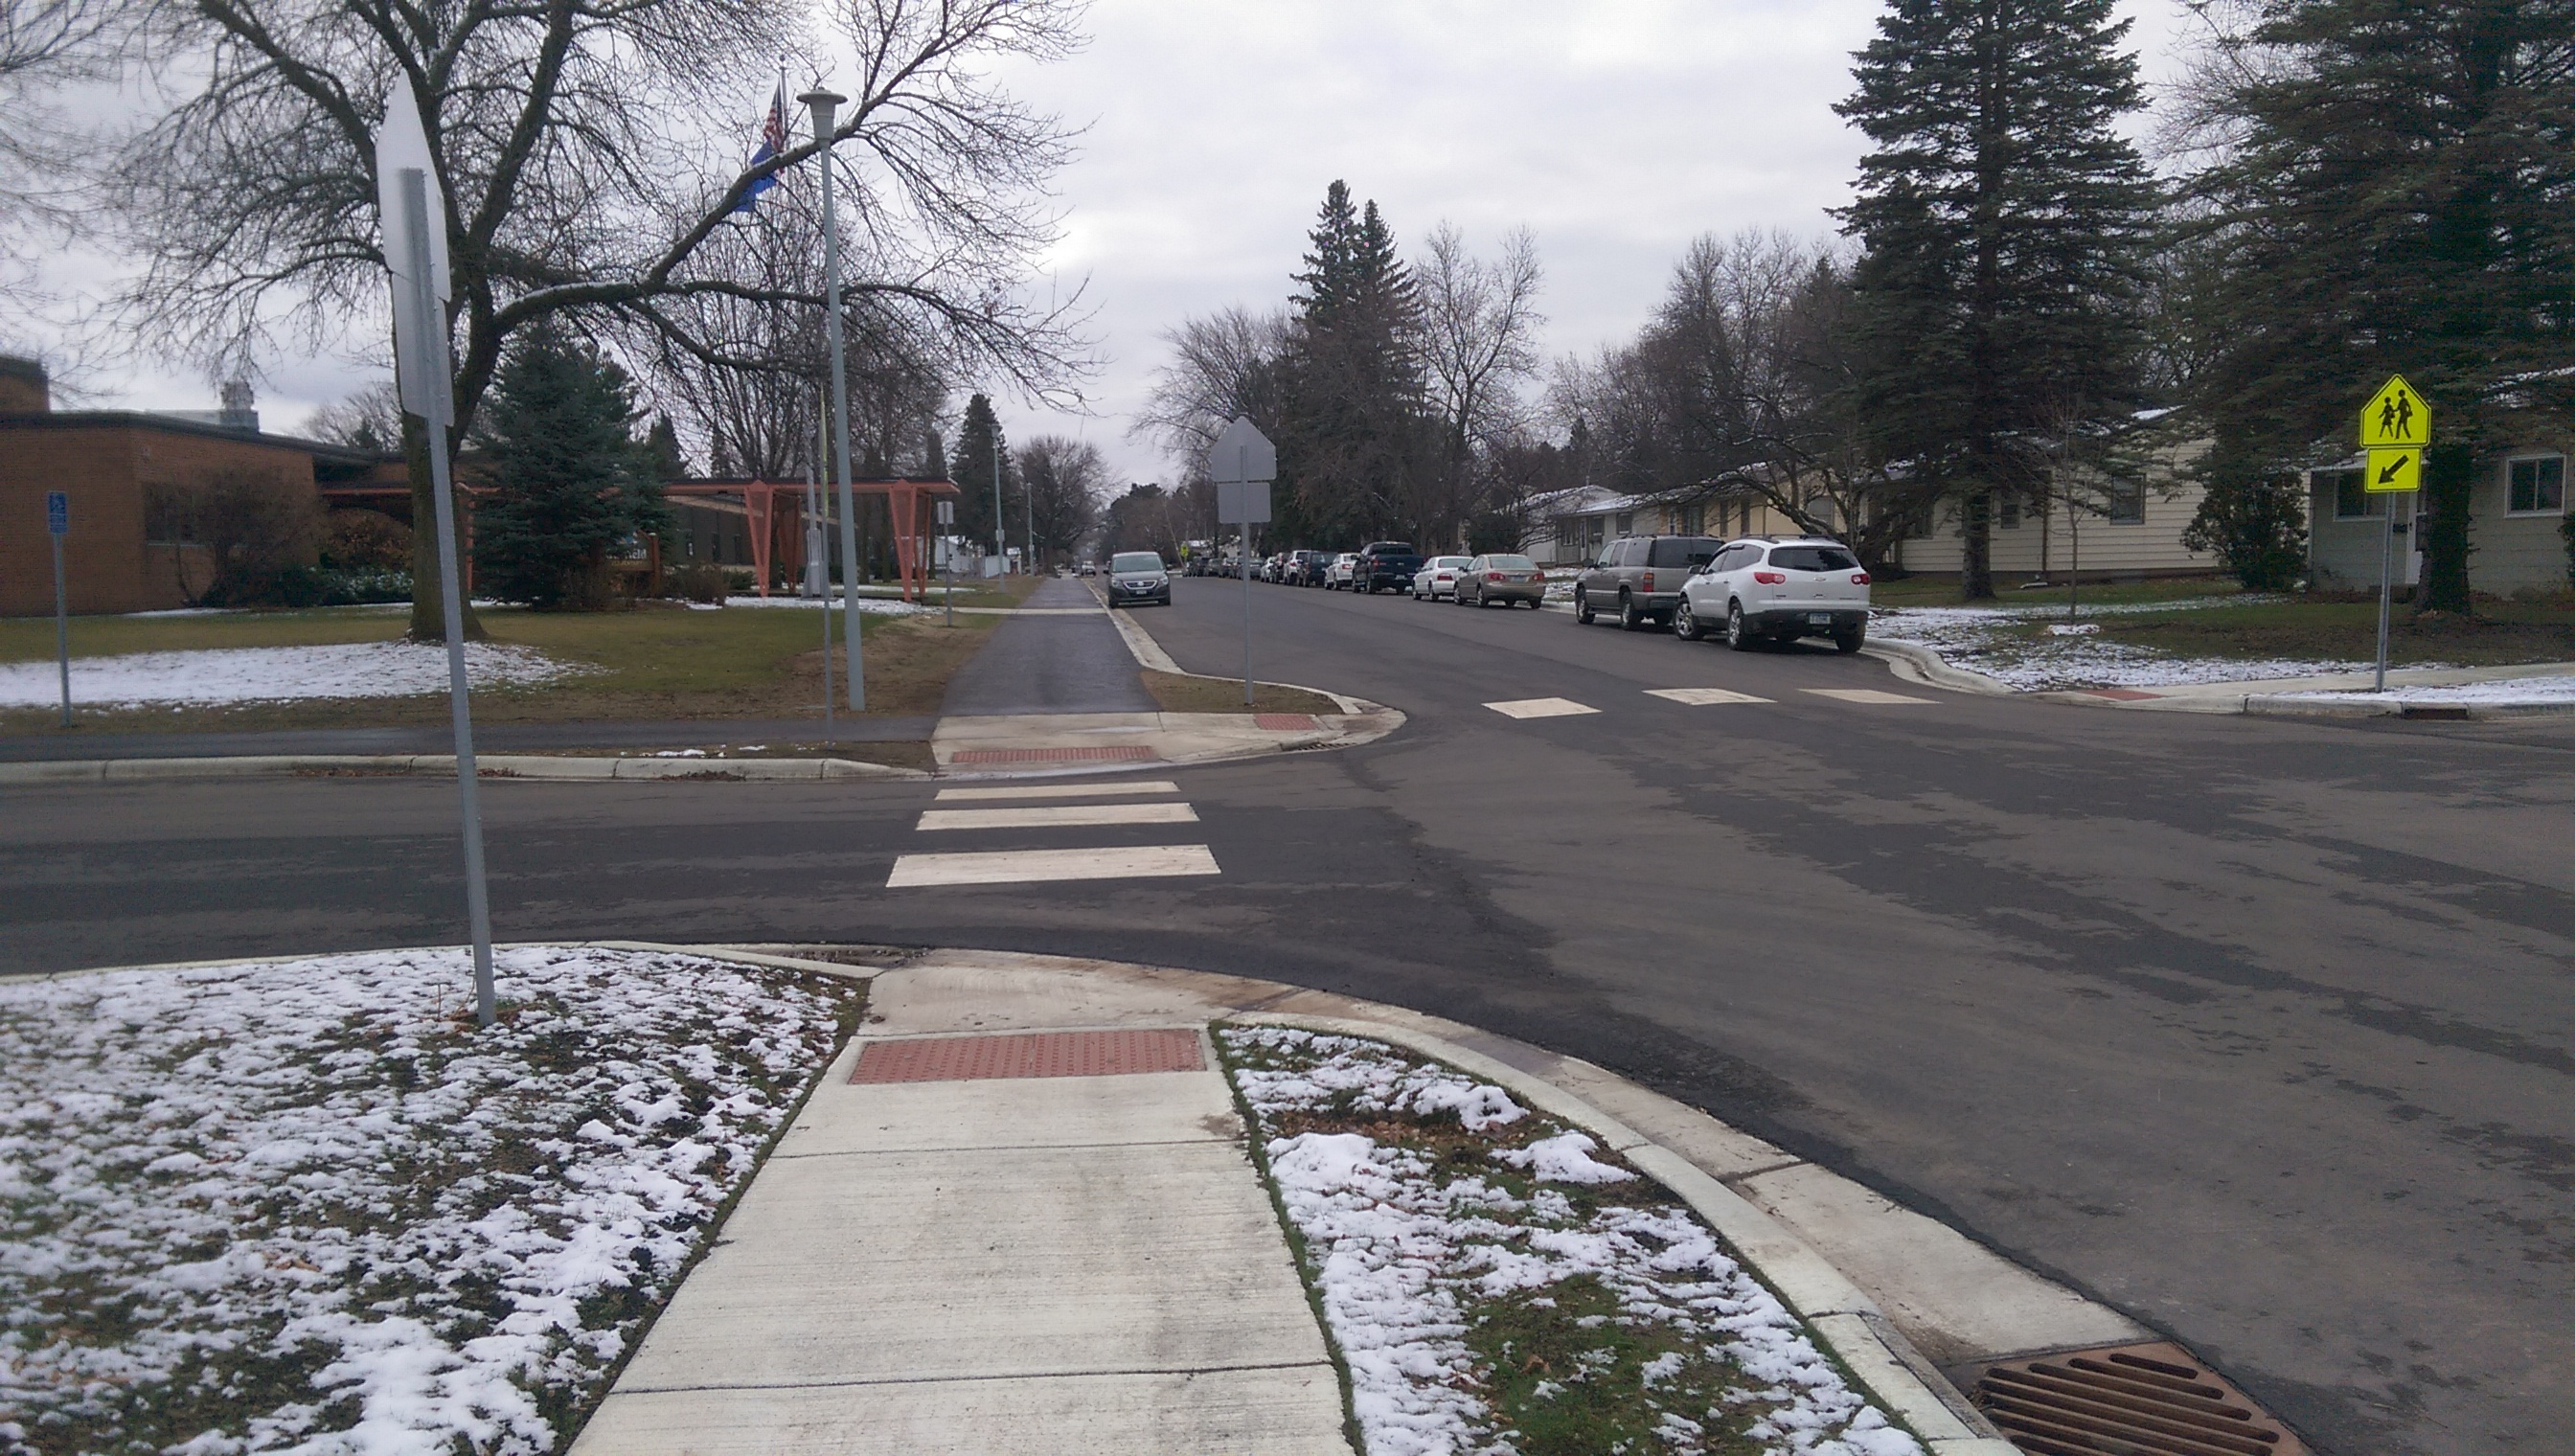 A quiet street with crosswalks near a school